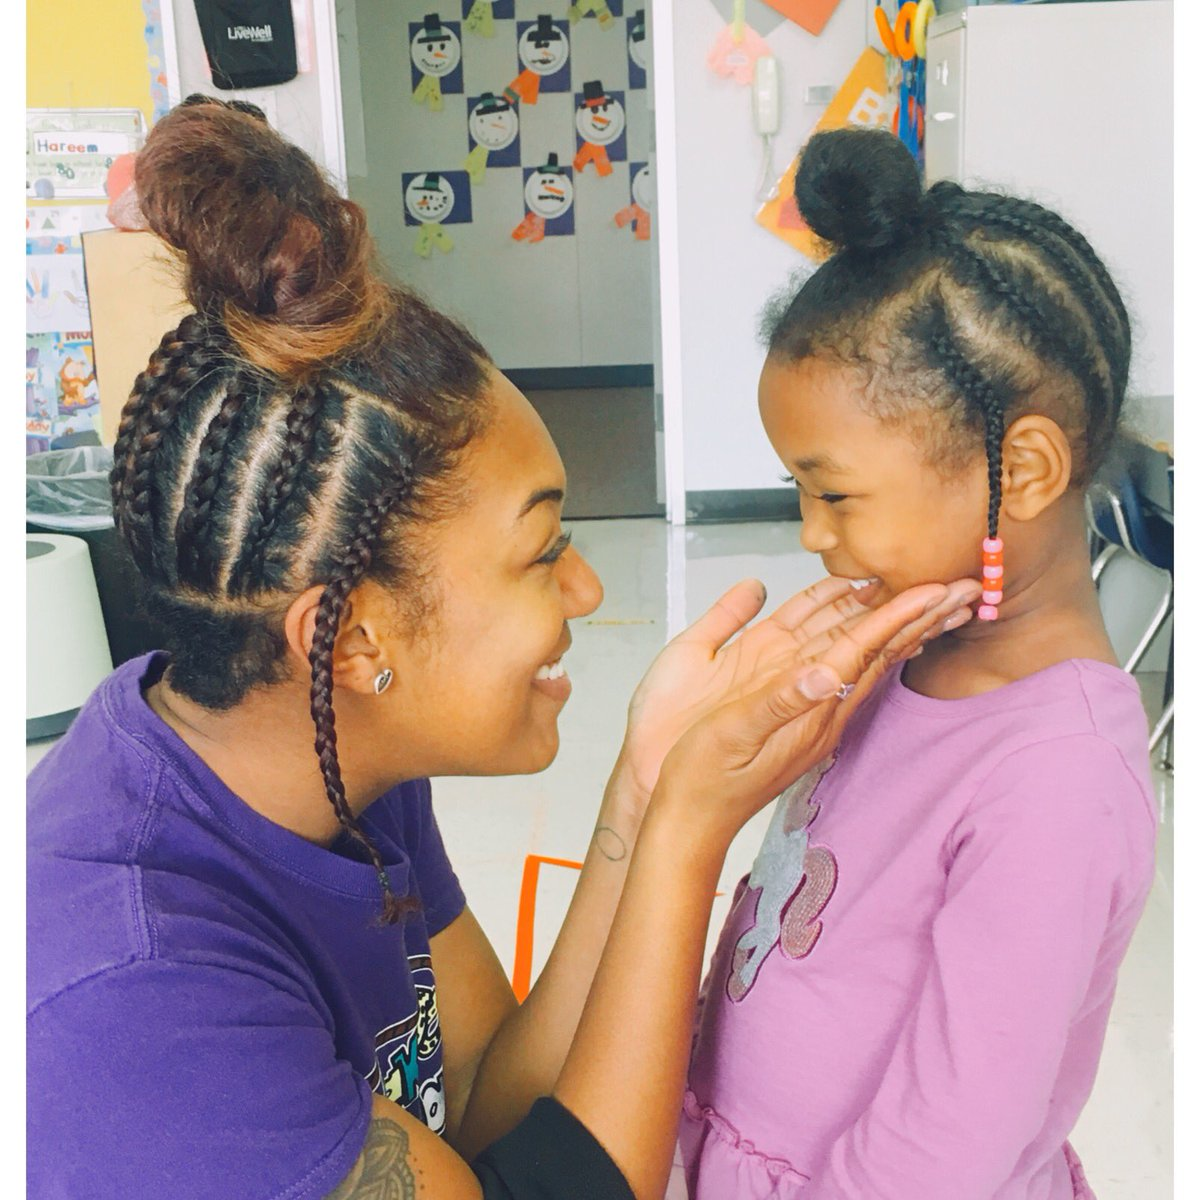 This teacher copied her student's braids to remind her that she has the power to inspire